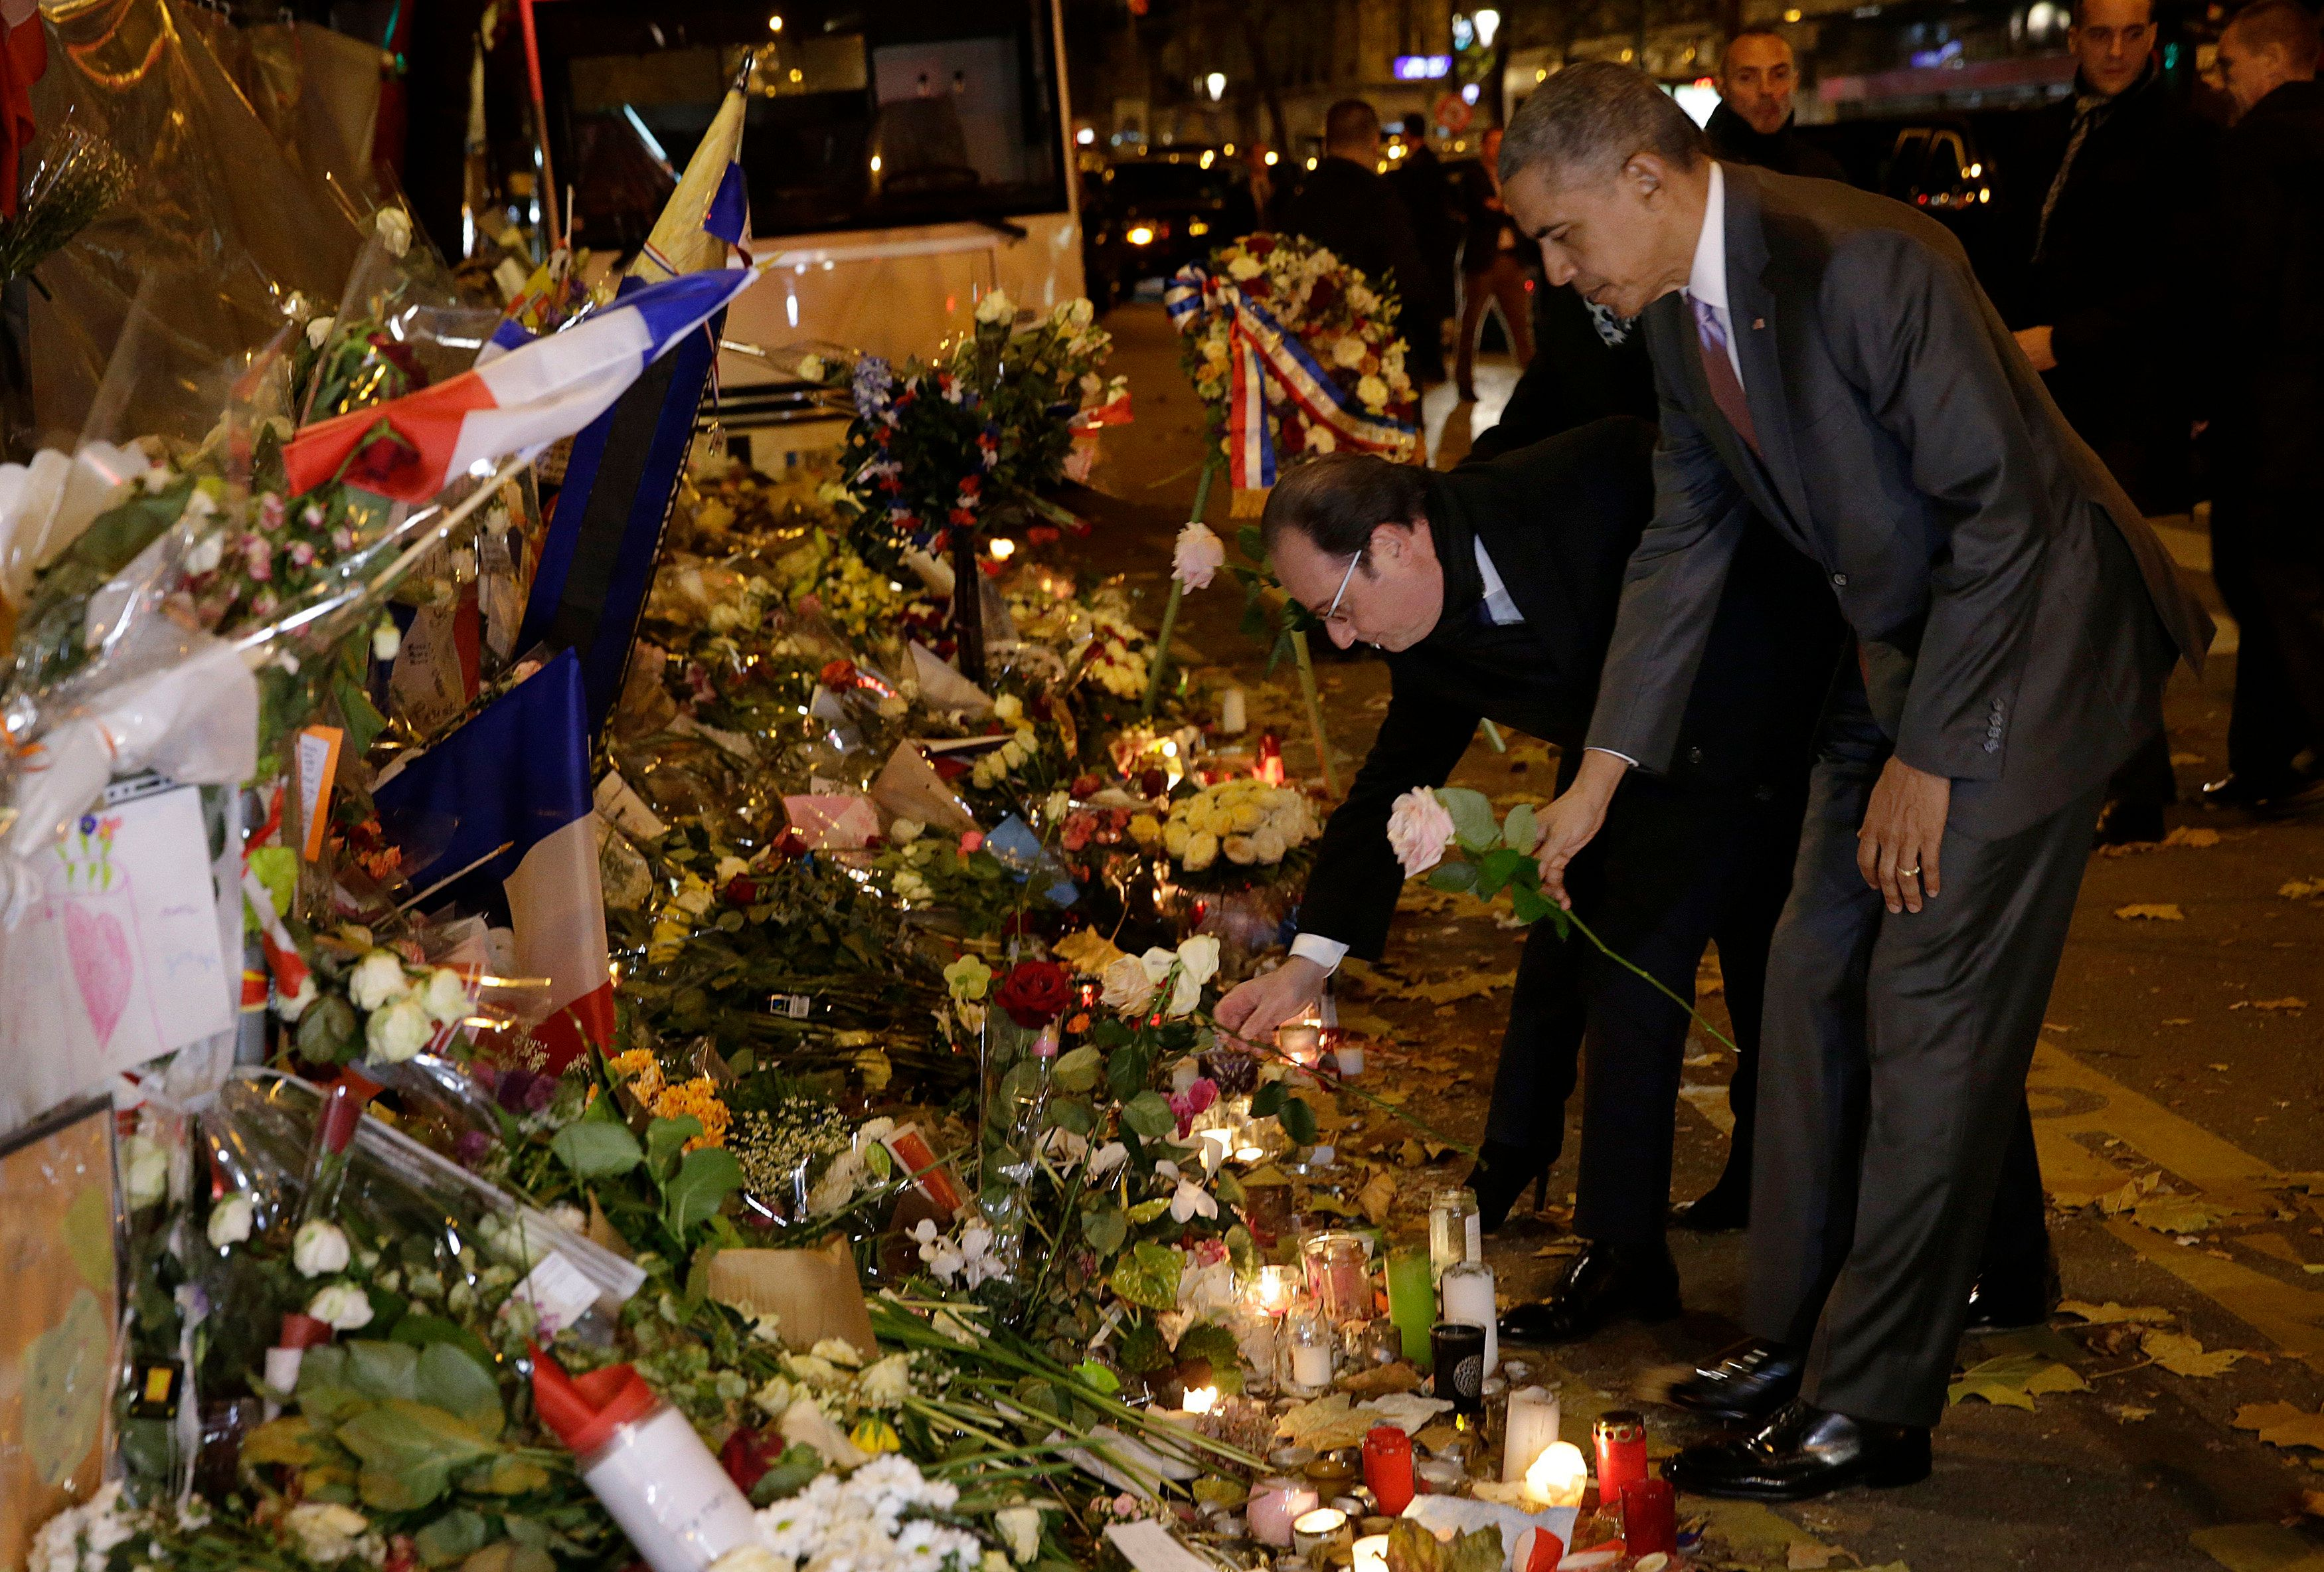 U.S. President Barack Obama and French President Francois Hollande pay their respect at the Bataclan concert hall, one of the recent deadly Paris attack sites, after Obama arrived in the French capital to attend the World Climate Change Conference 2015 (COP21), November 30, 2015.   REUTERS/Philippe Wojazer